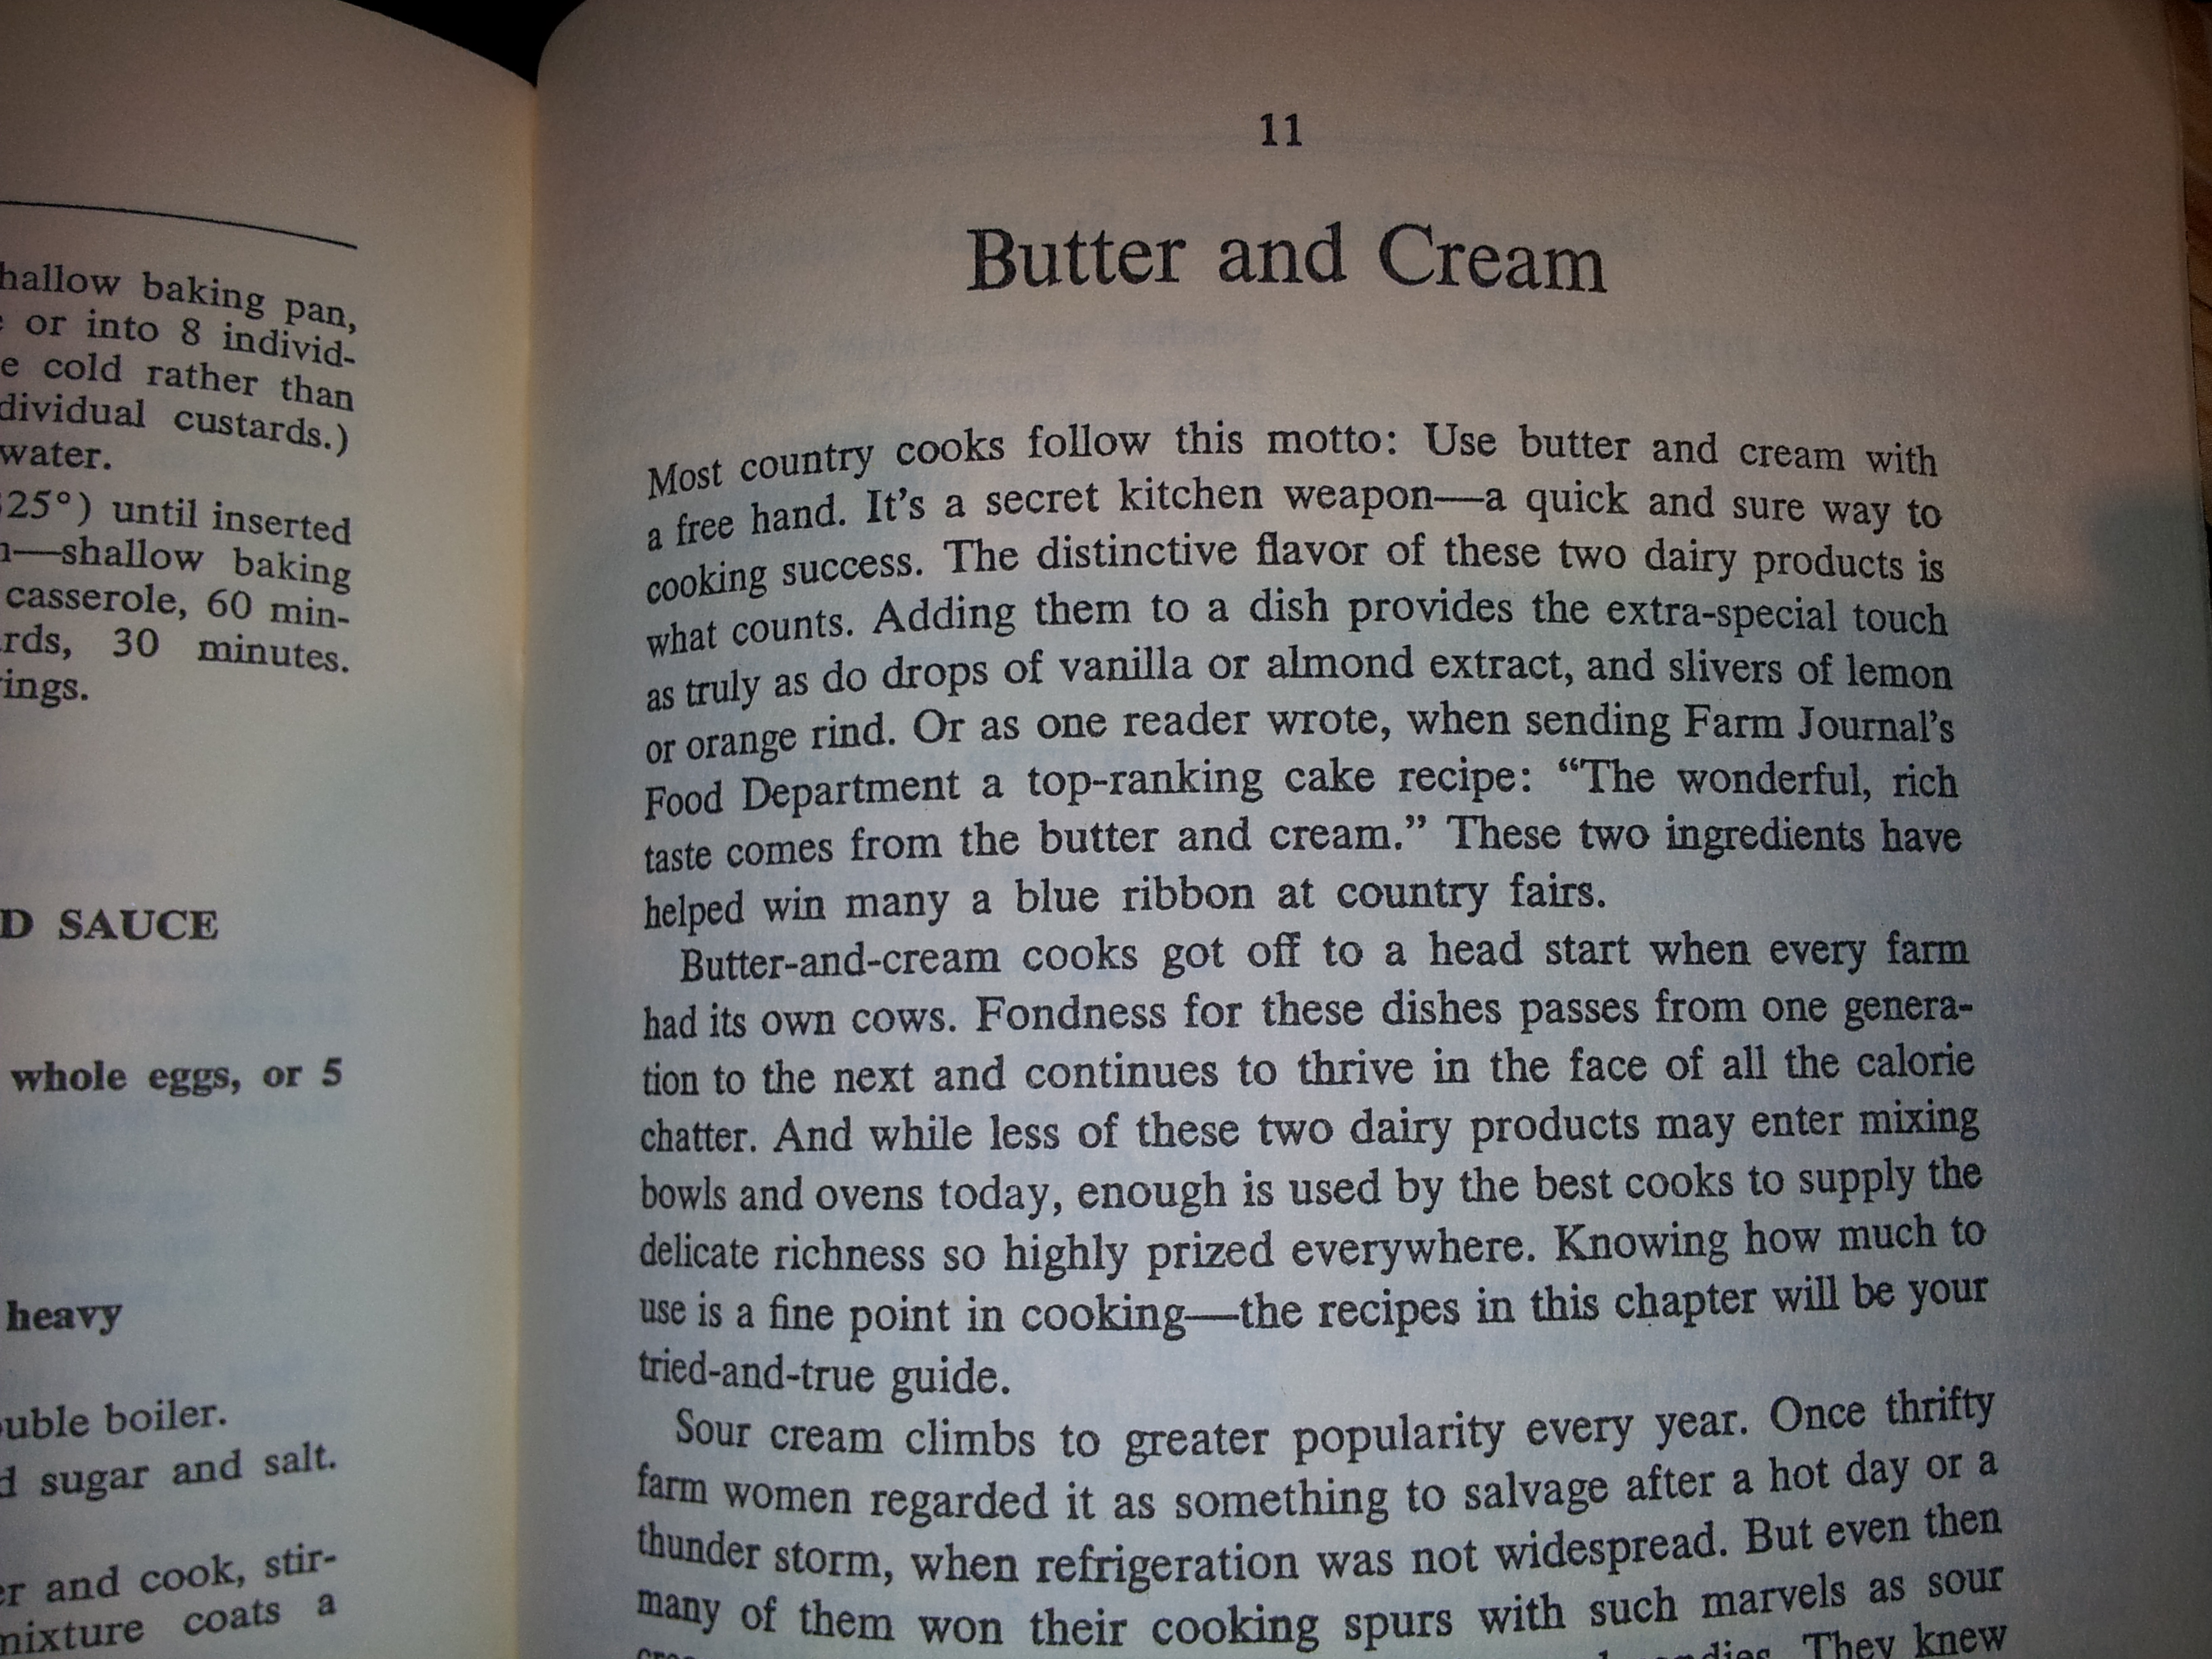 Cooking with Butter and Cream